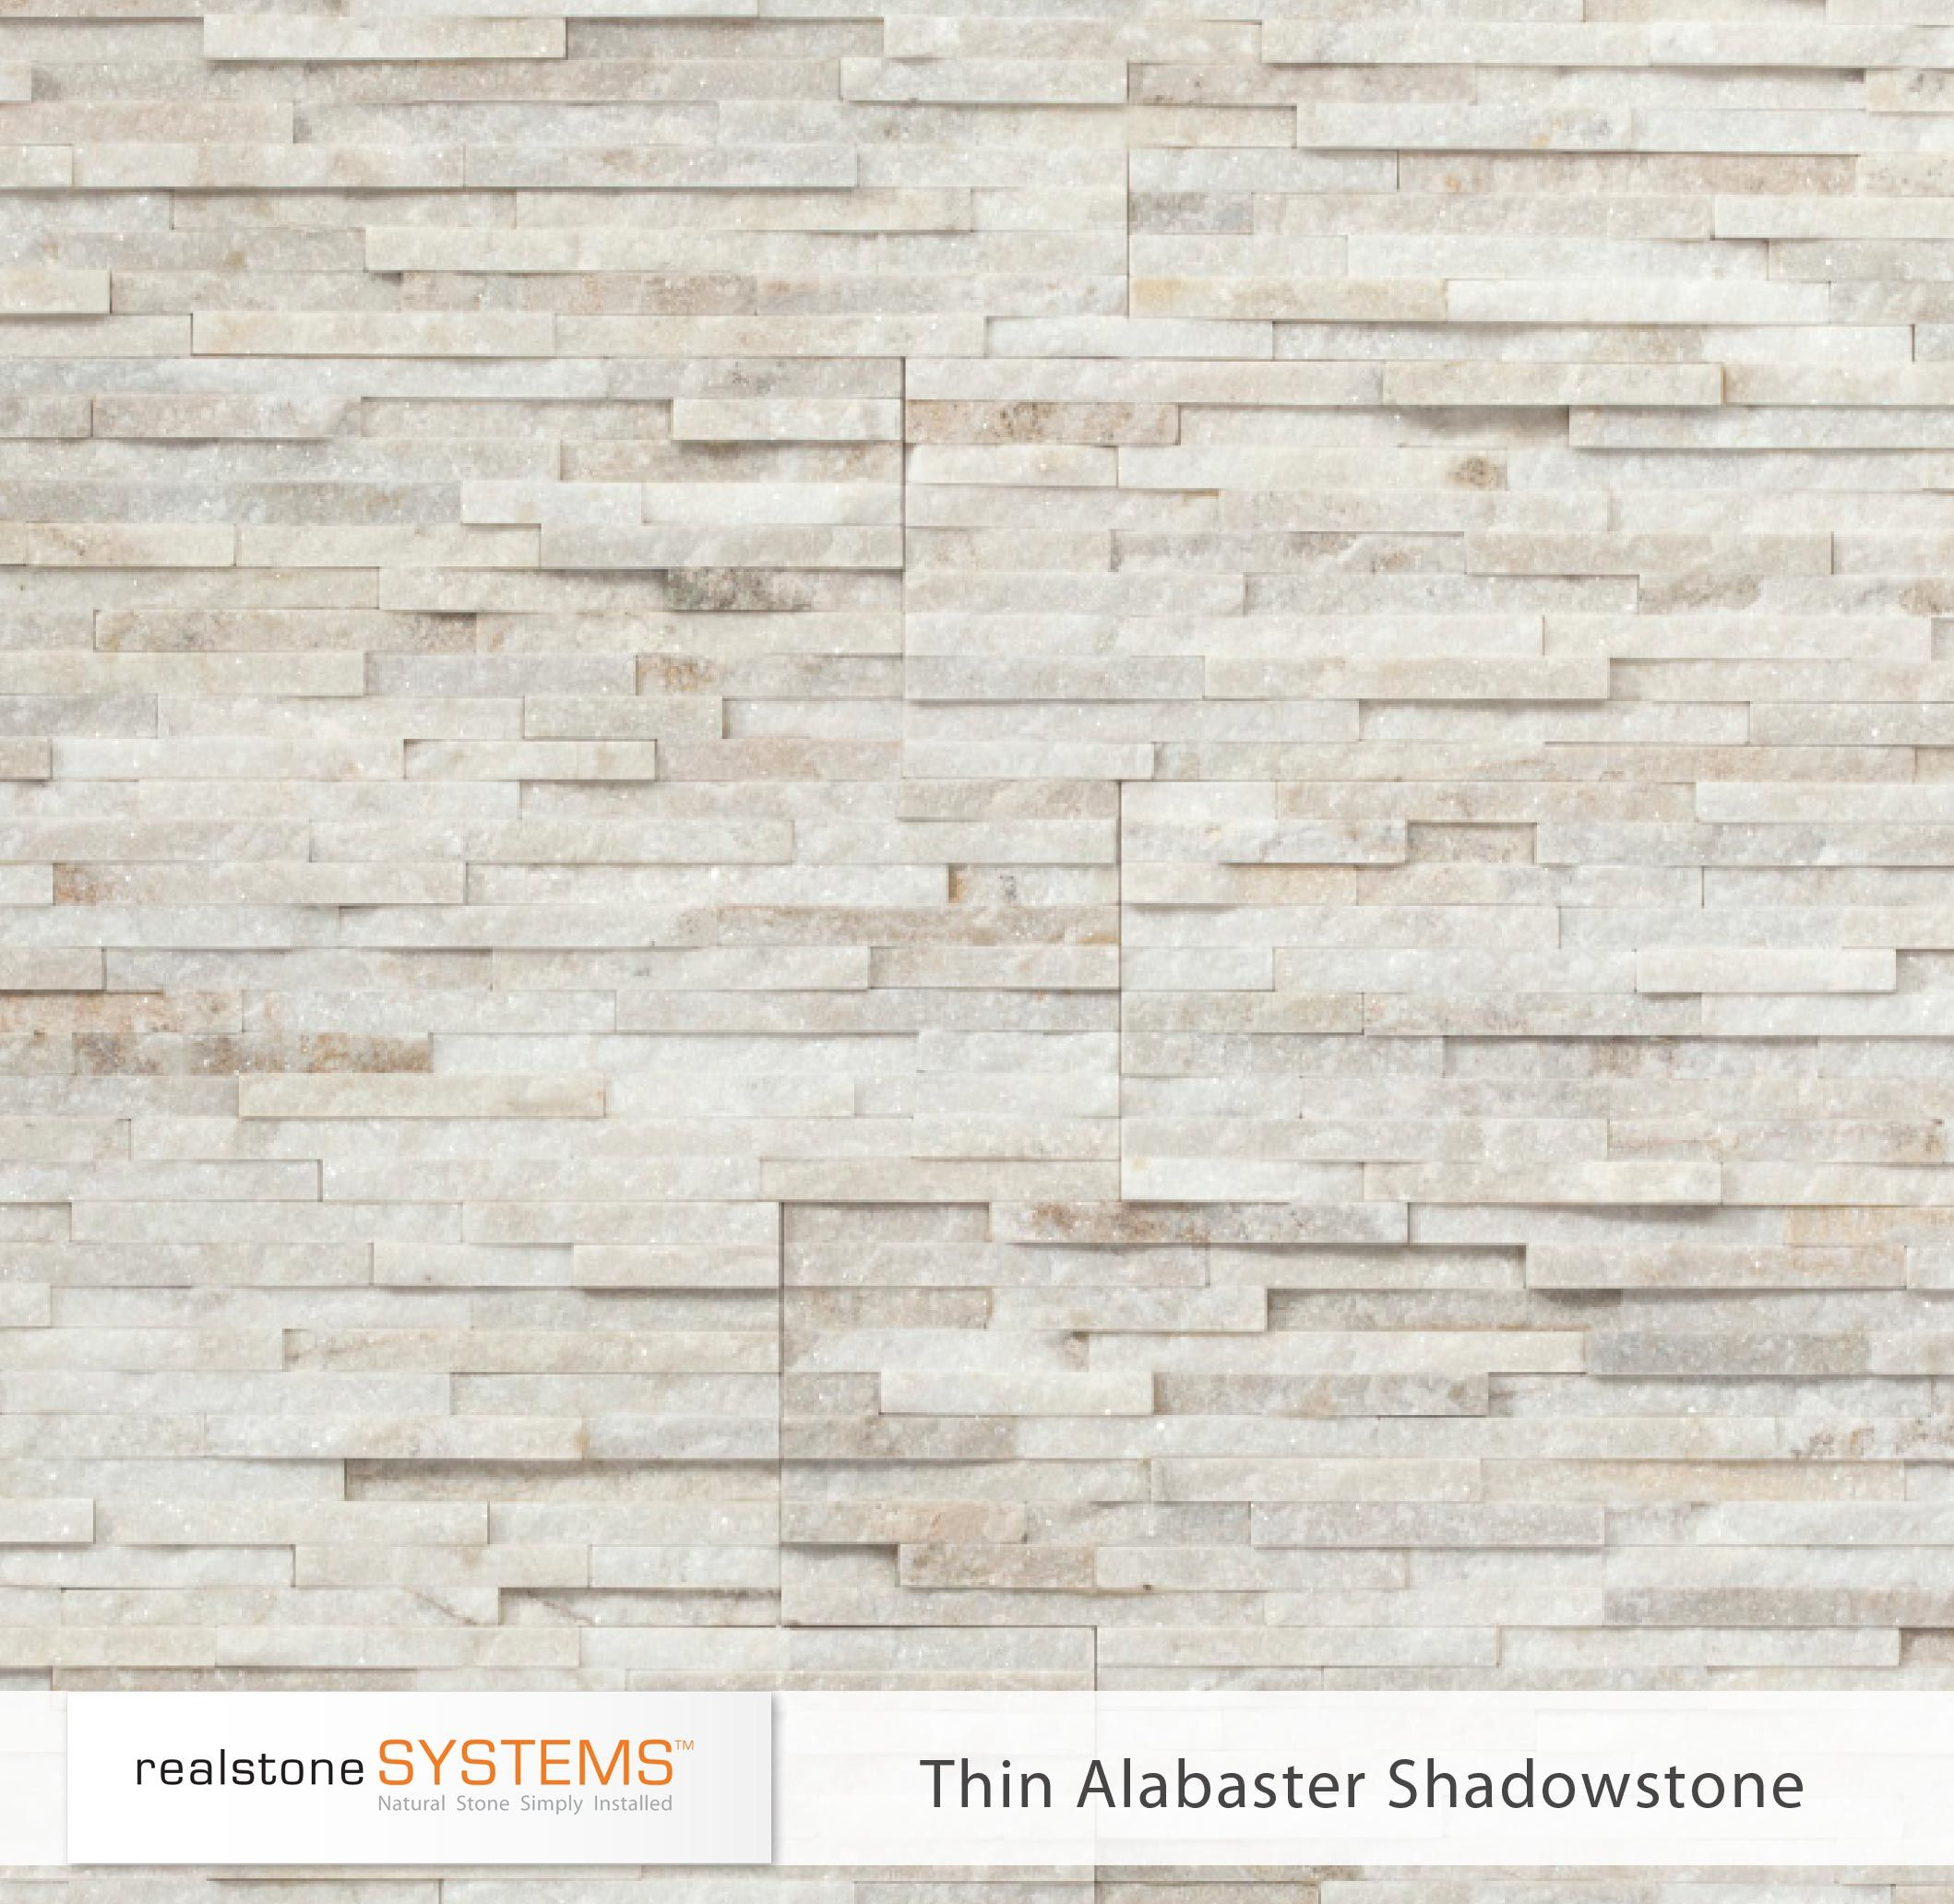 Thin Alabaster Shadowstone Thinstone Veneers from Realstone Systems